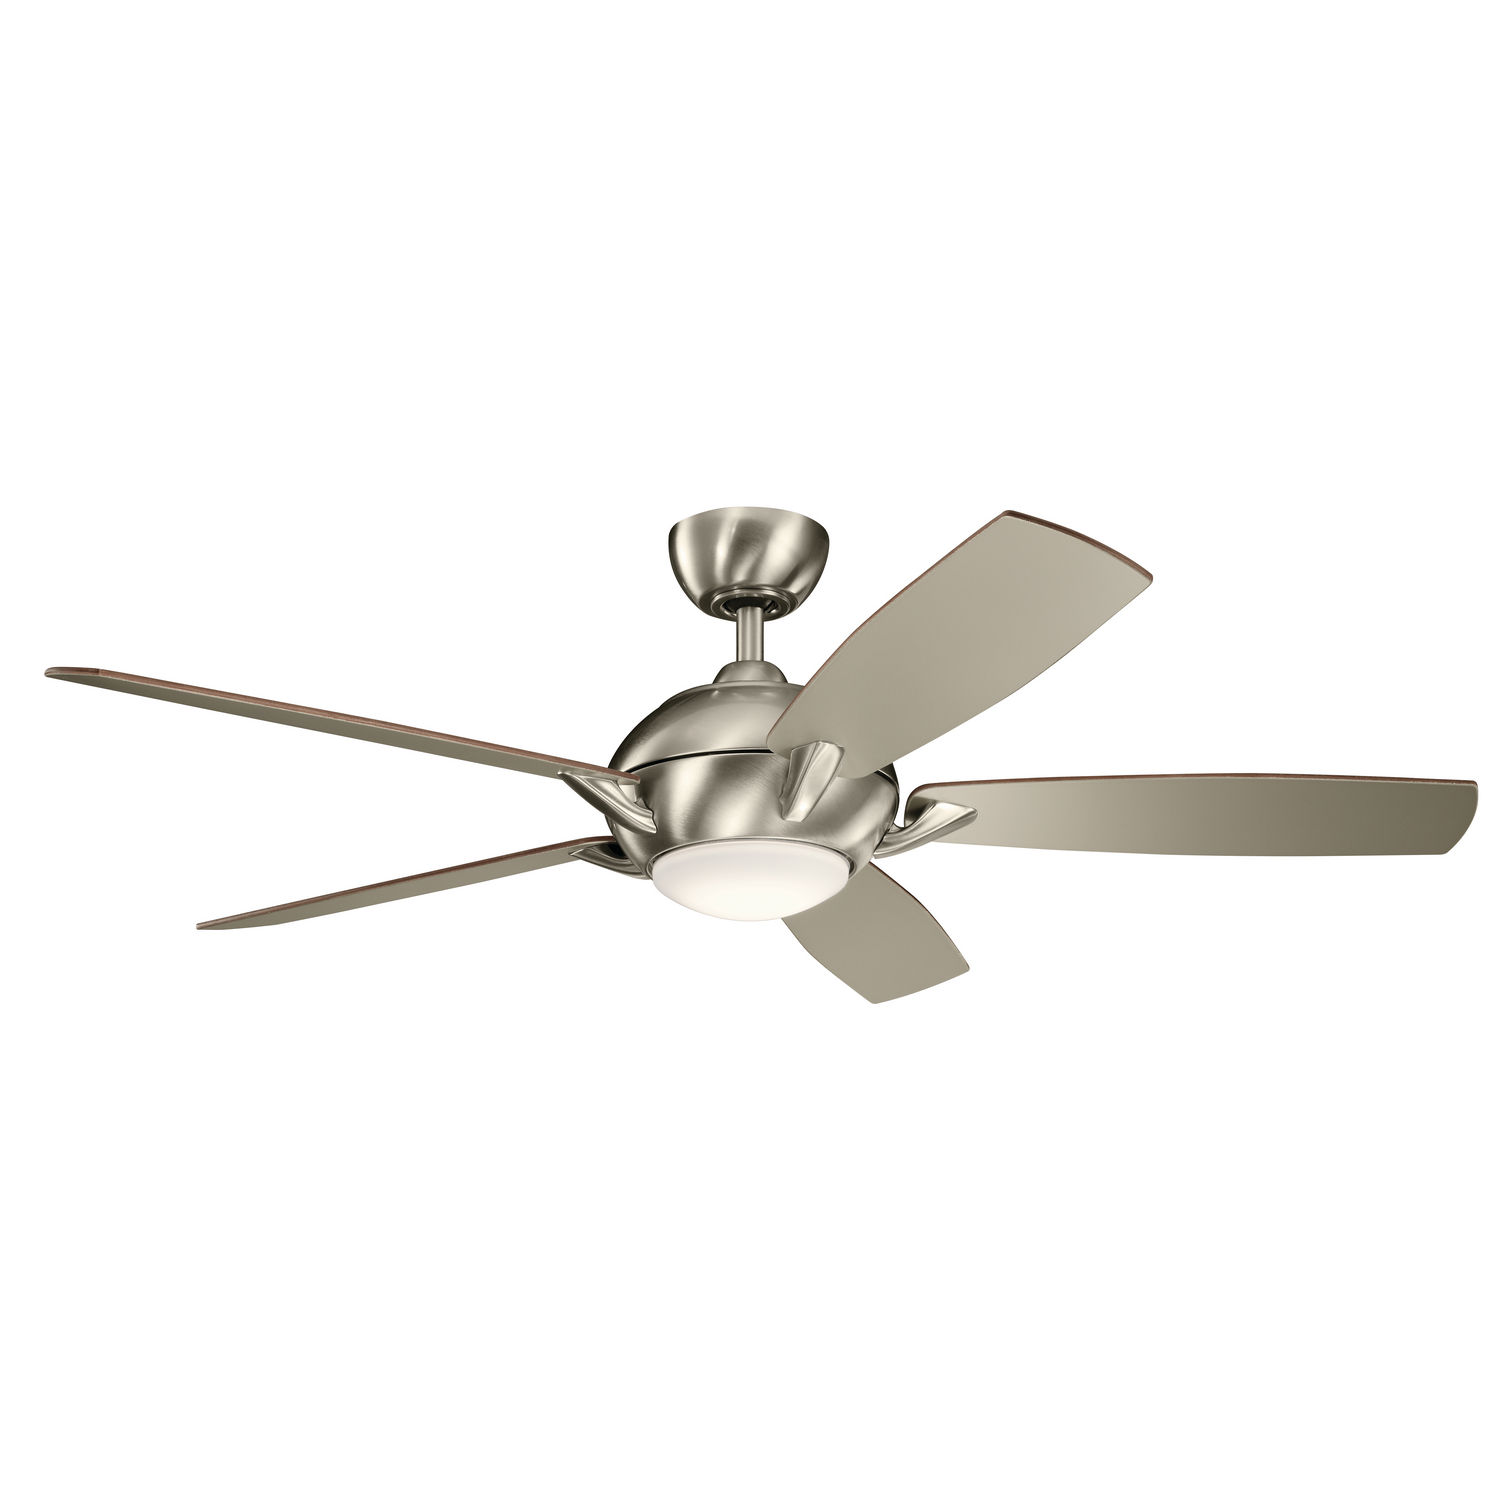 54 inchCeiling Fan from the Geno collection by Kichler 330001BSS